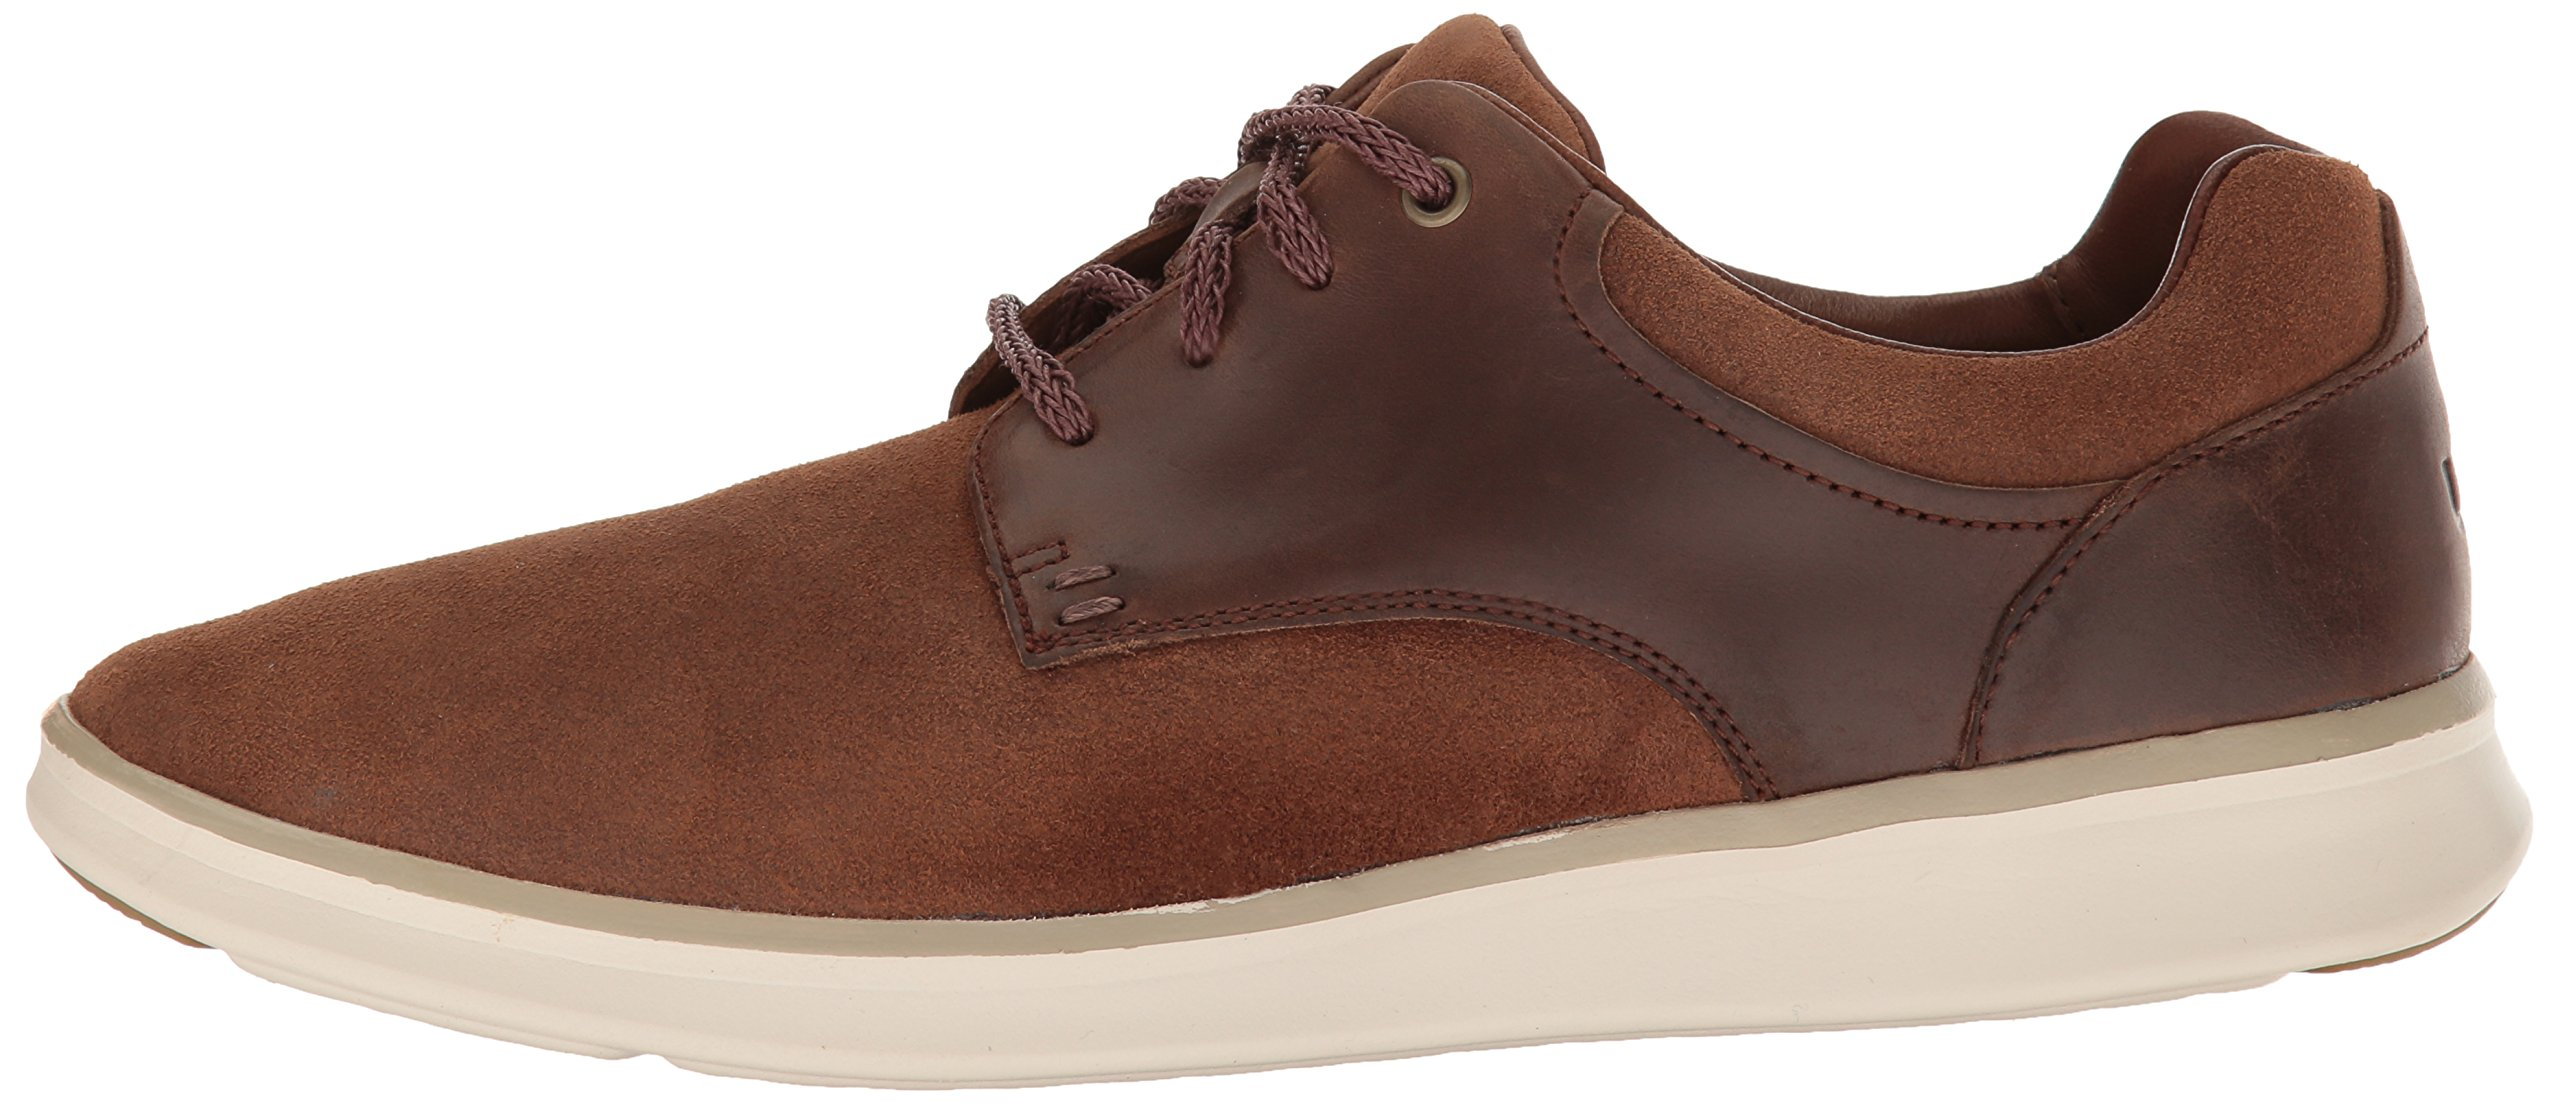 UGG Men's Hepner Fashion Sneaker Chestnut 11.5 M US by UGG (Image #5)